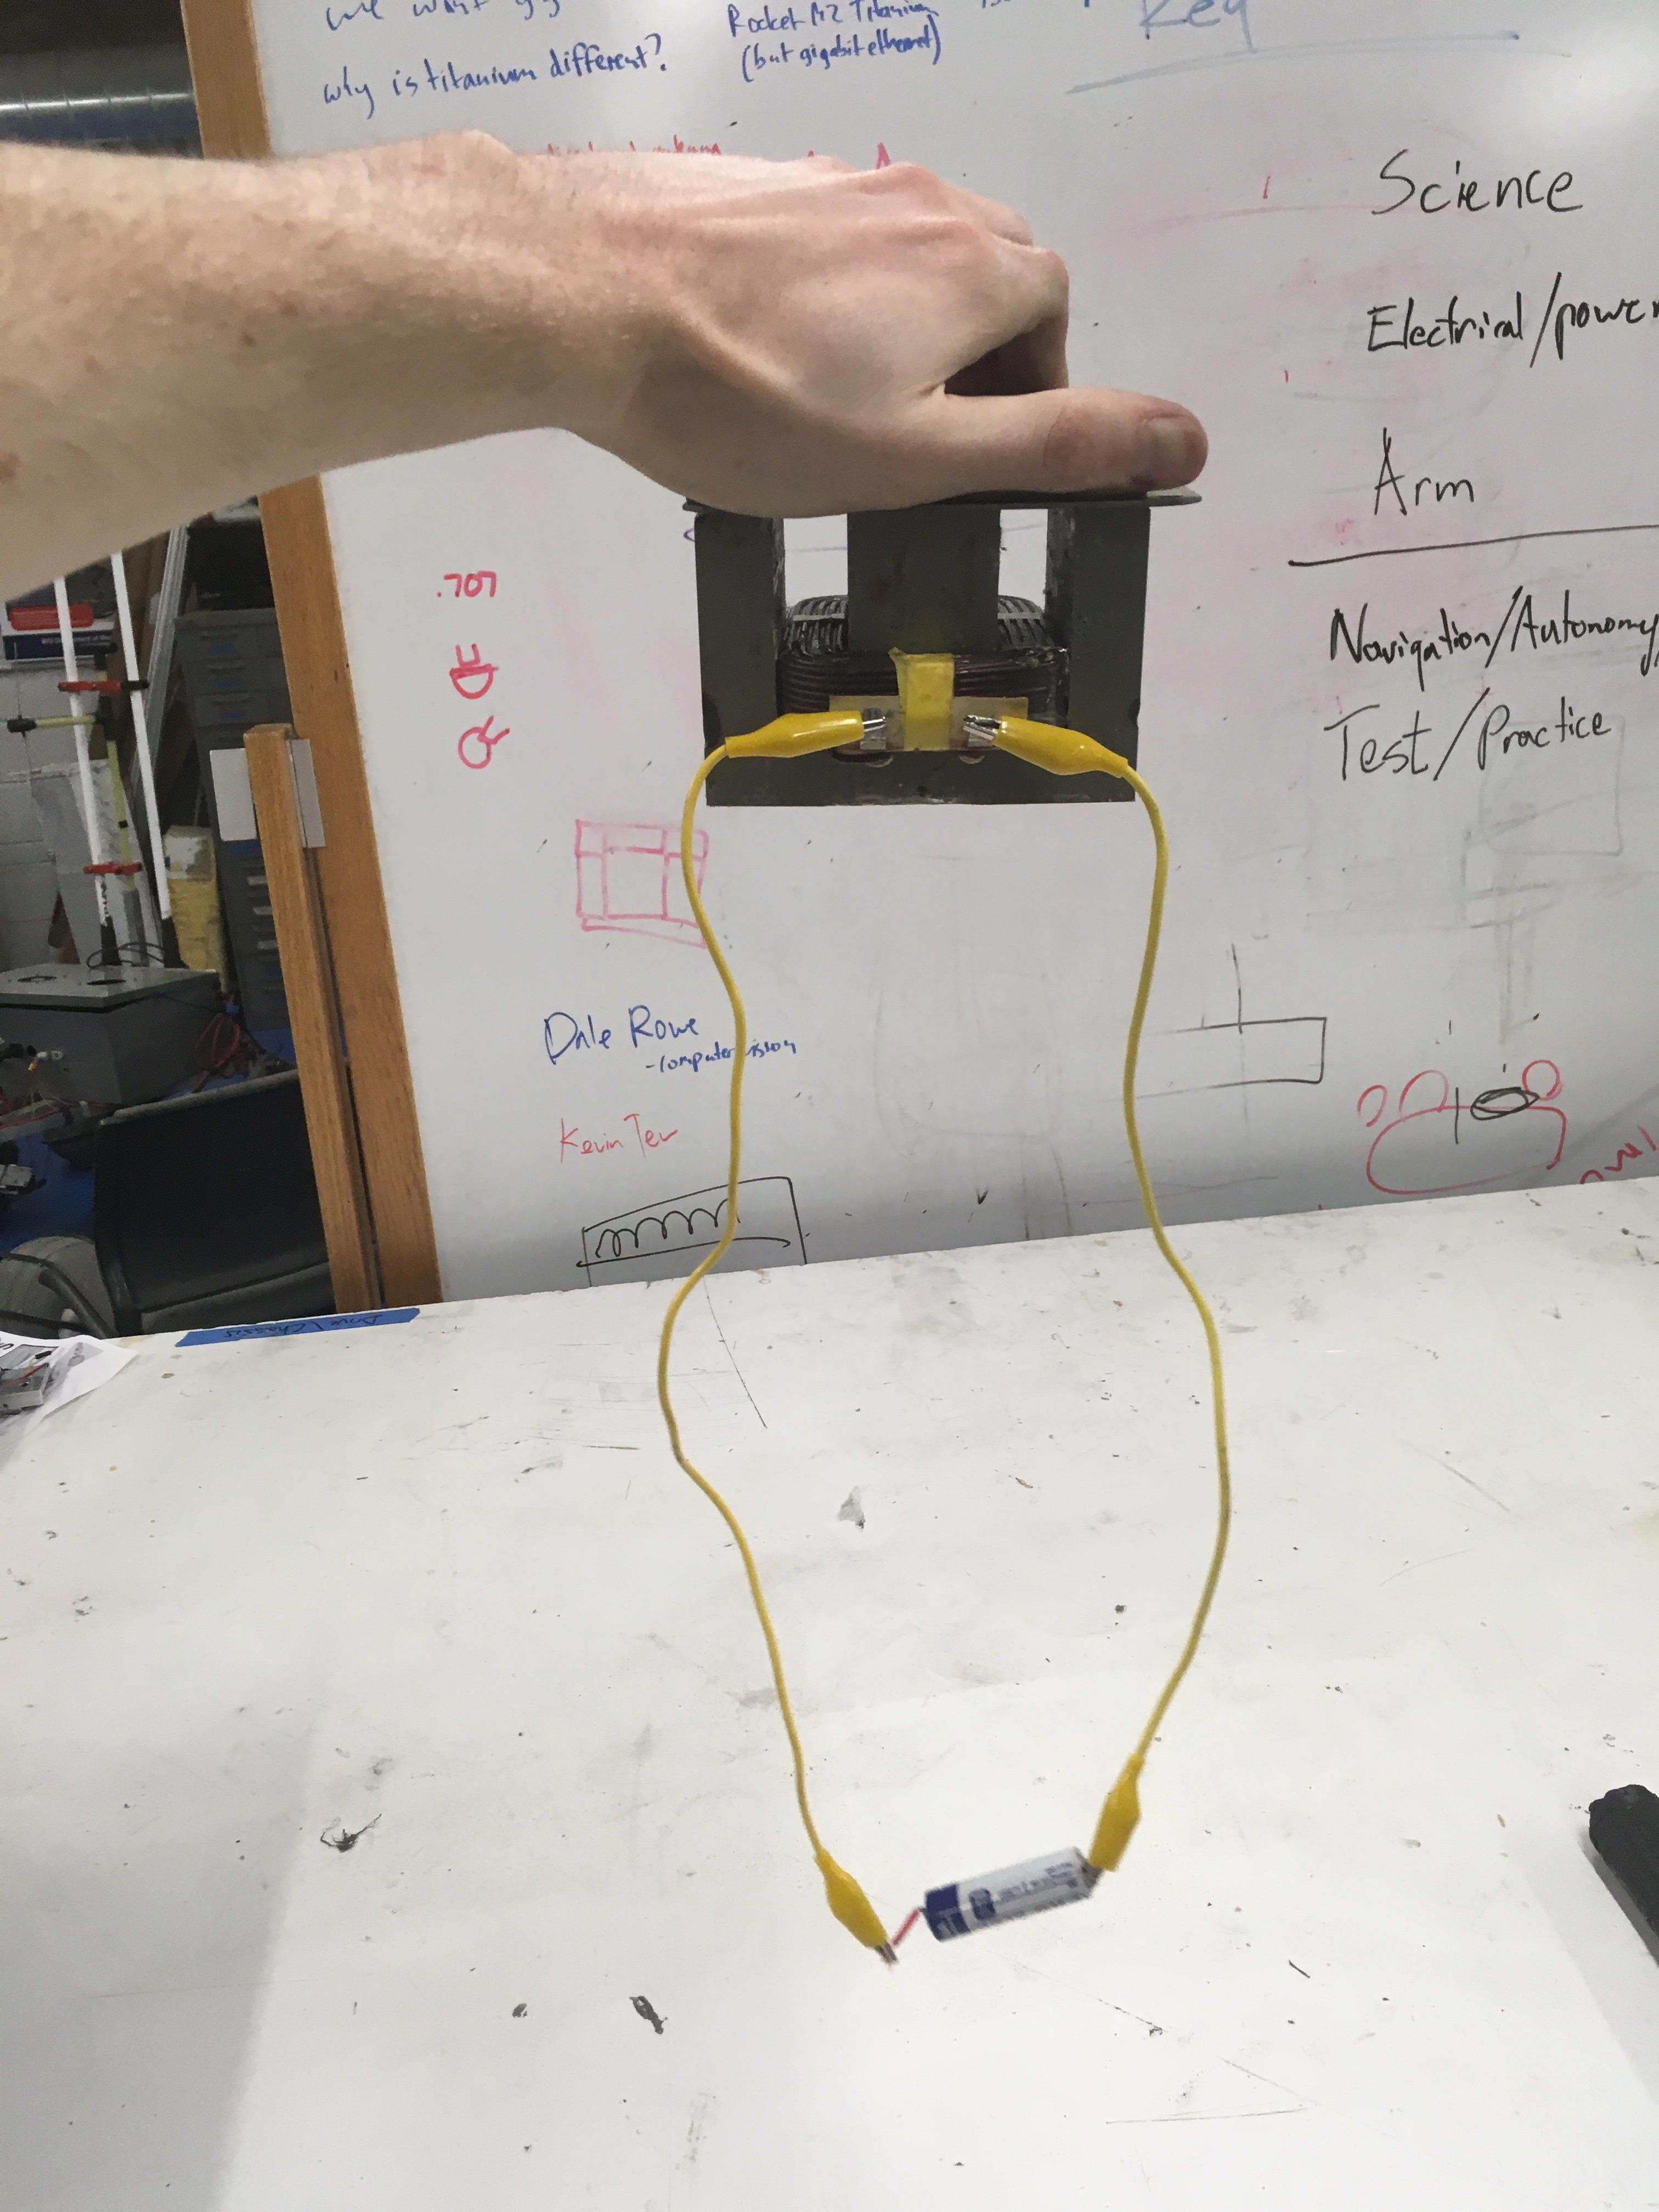 Picture of Connect Power to the Coil and Have Fun